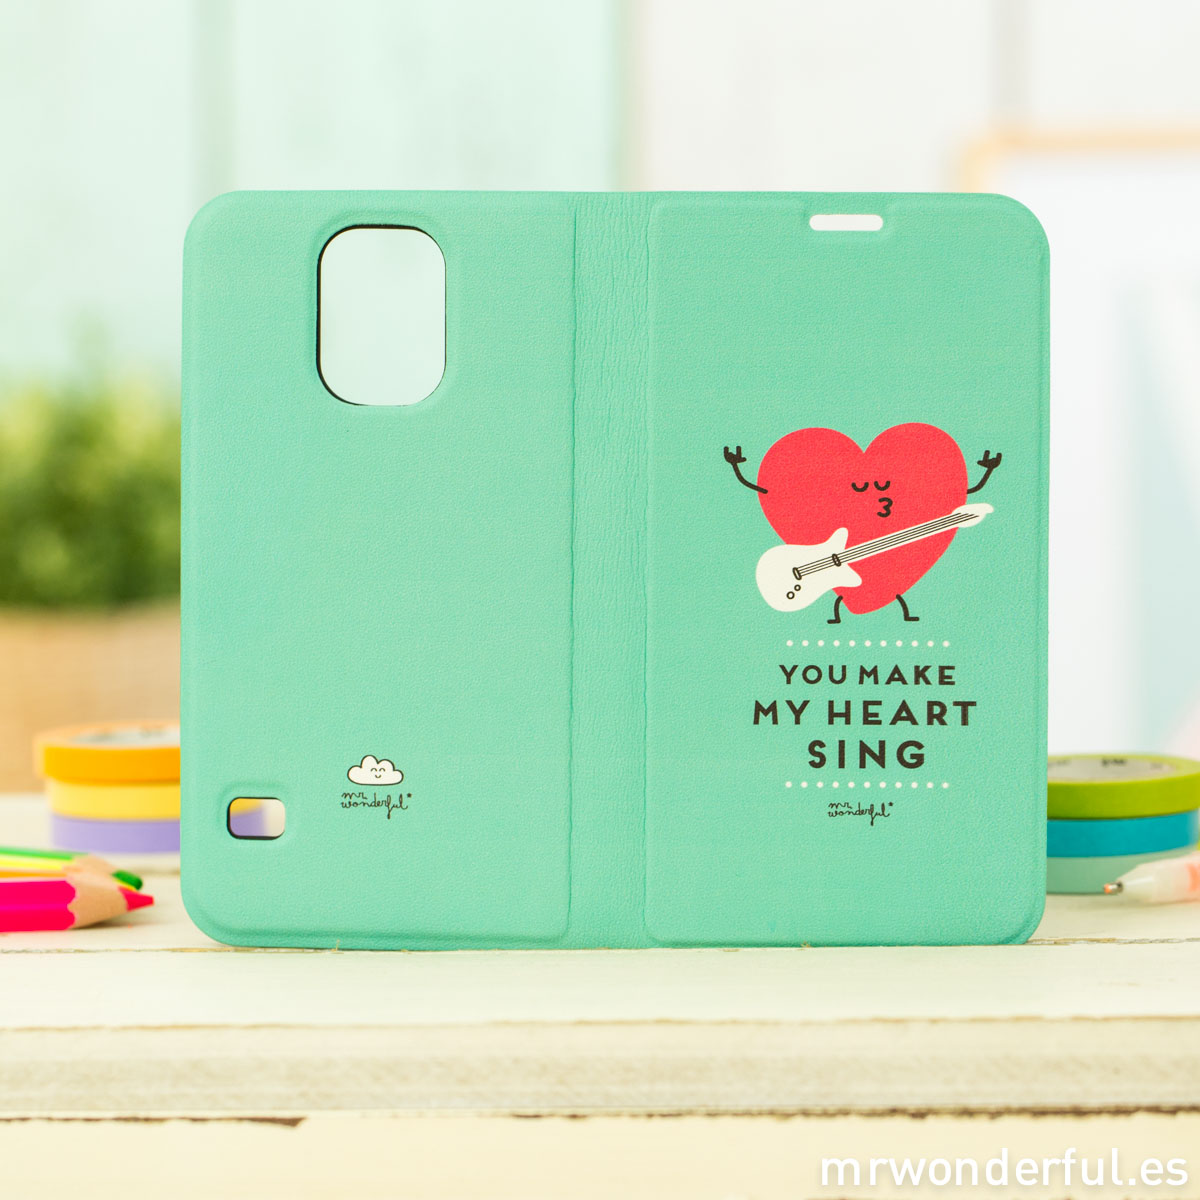 mrwonderful_MRFOL004_funda-mint-samsung-galaxy-S5_you-make-heart-sing-37